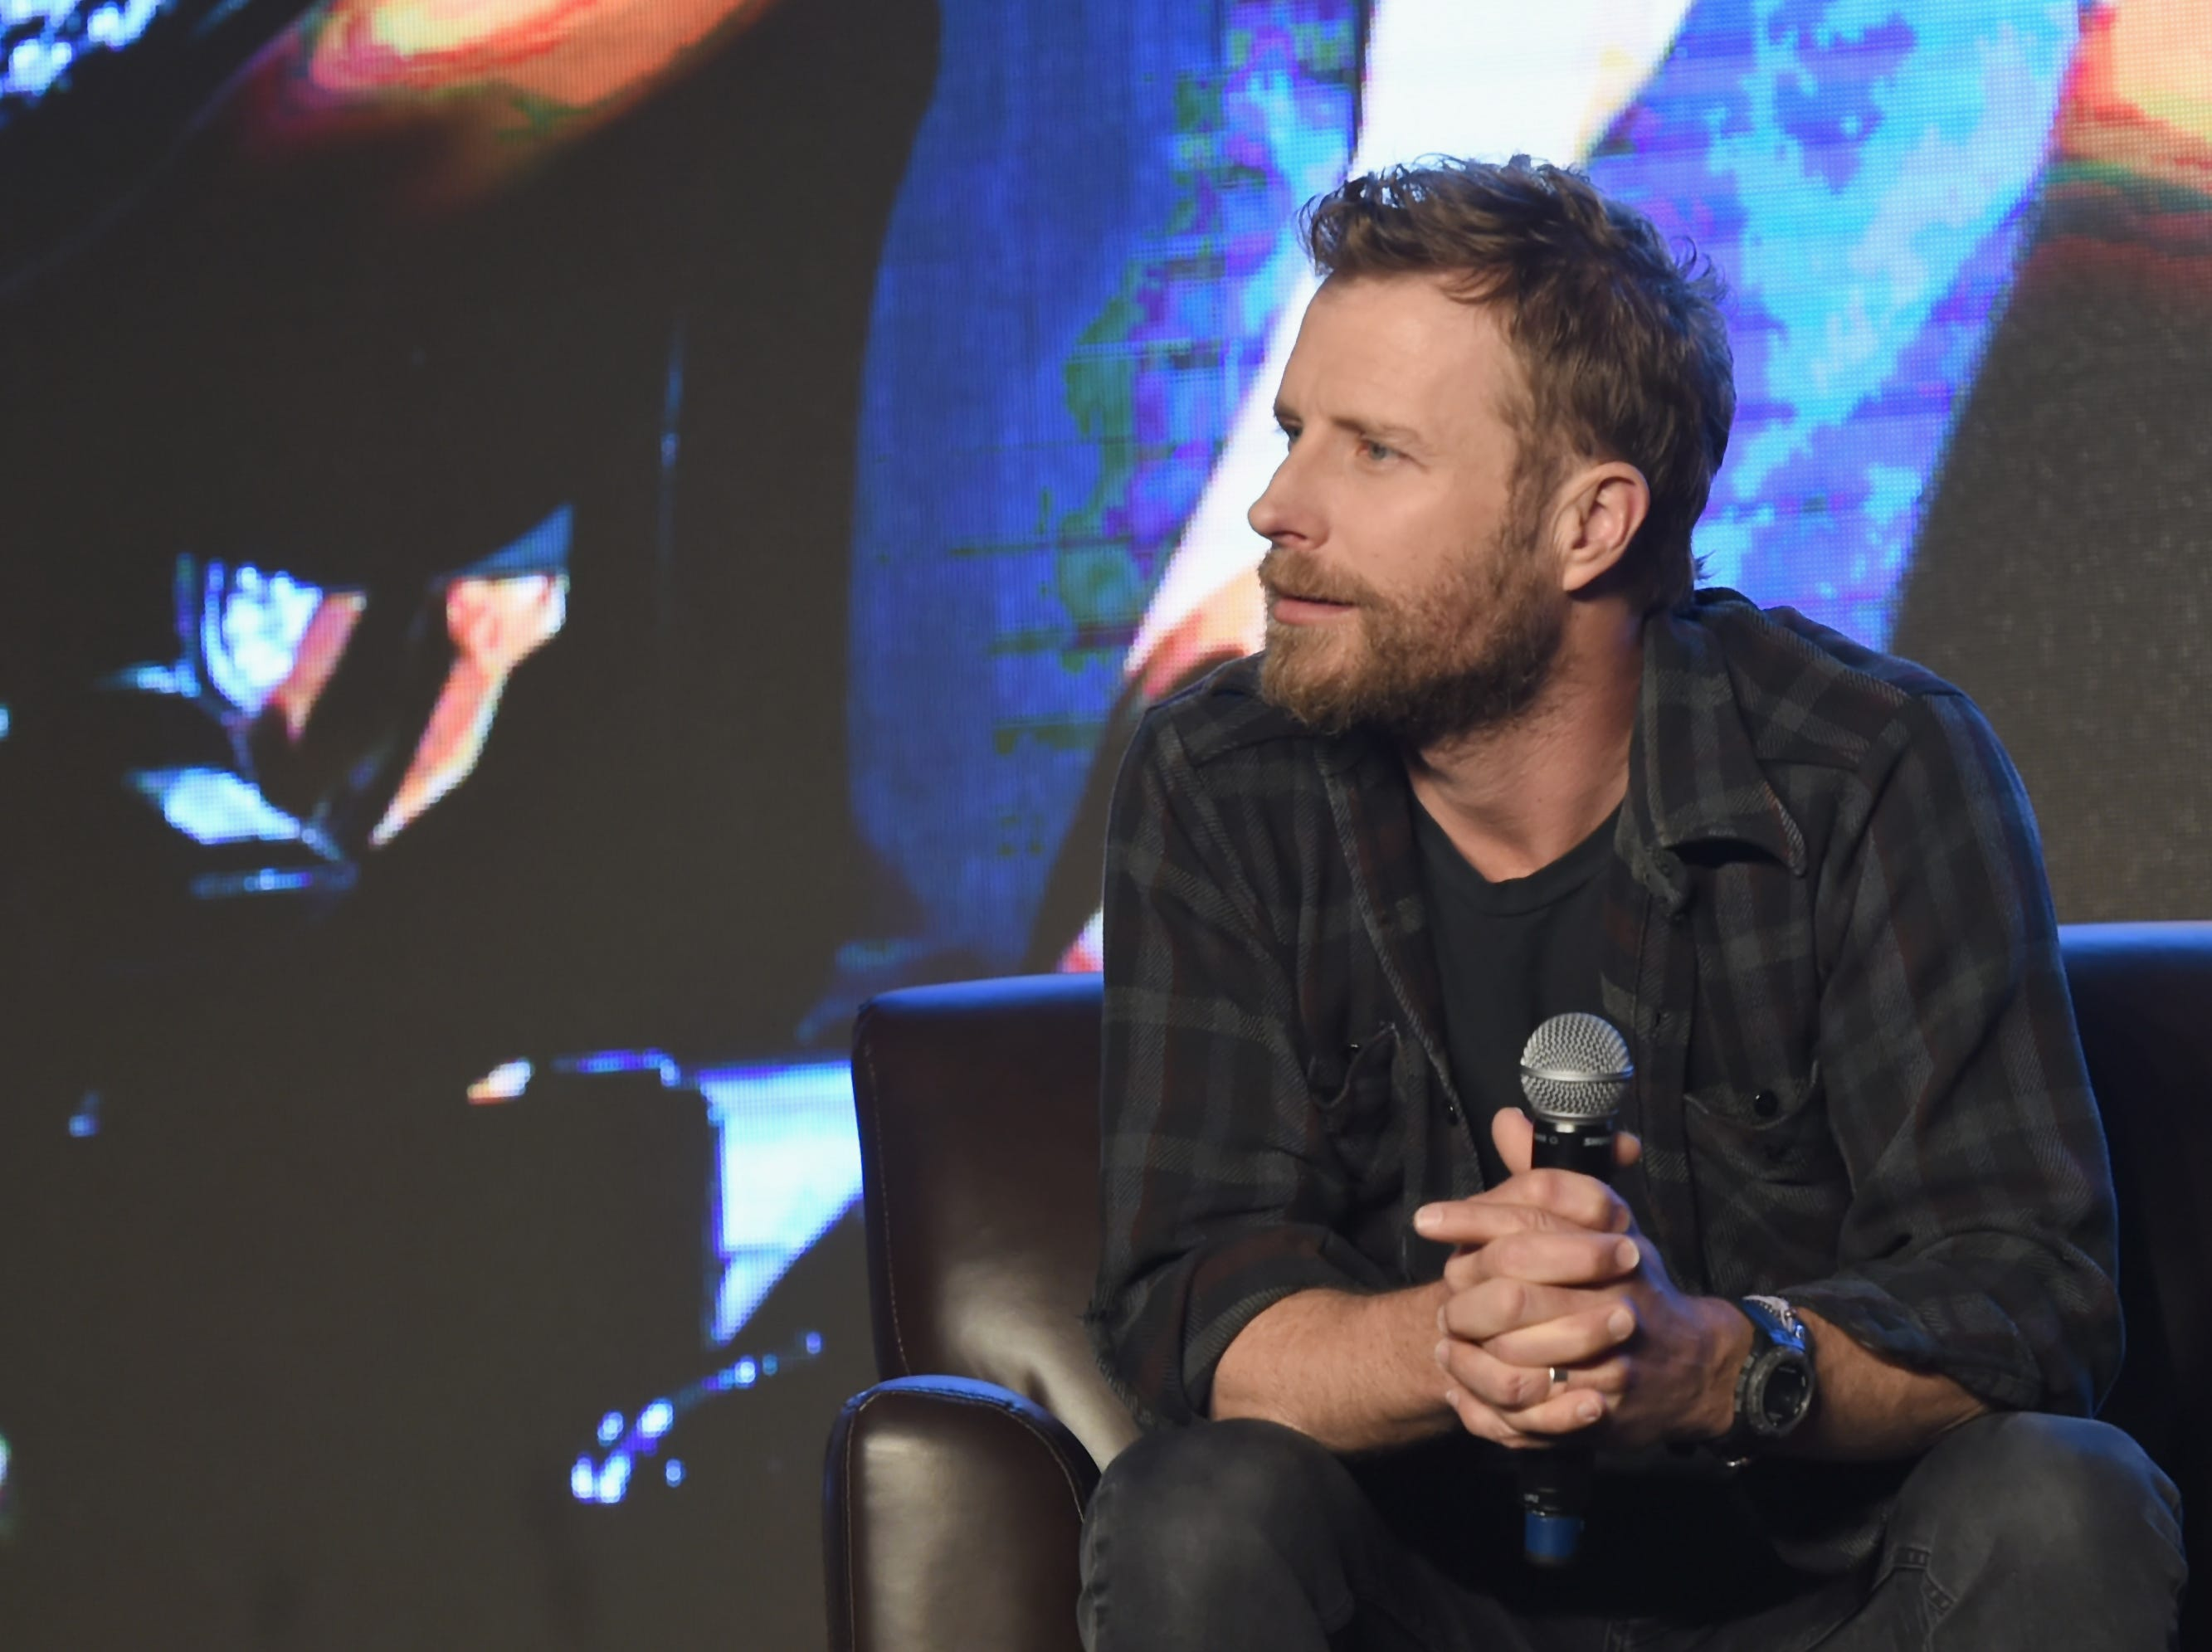 Dierks Bentley speaks during CRS 2018 Day 1 on Feb. 5, 2018 in Nashville, Tennessee